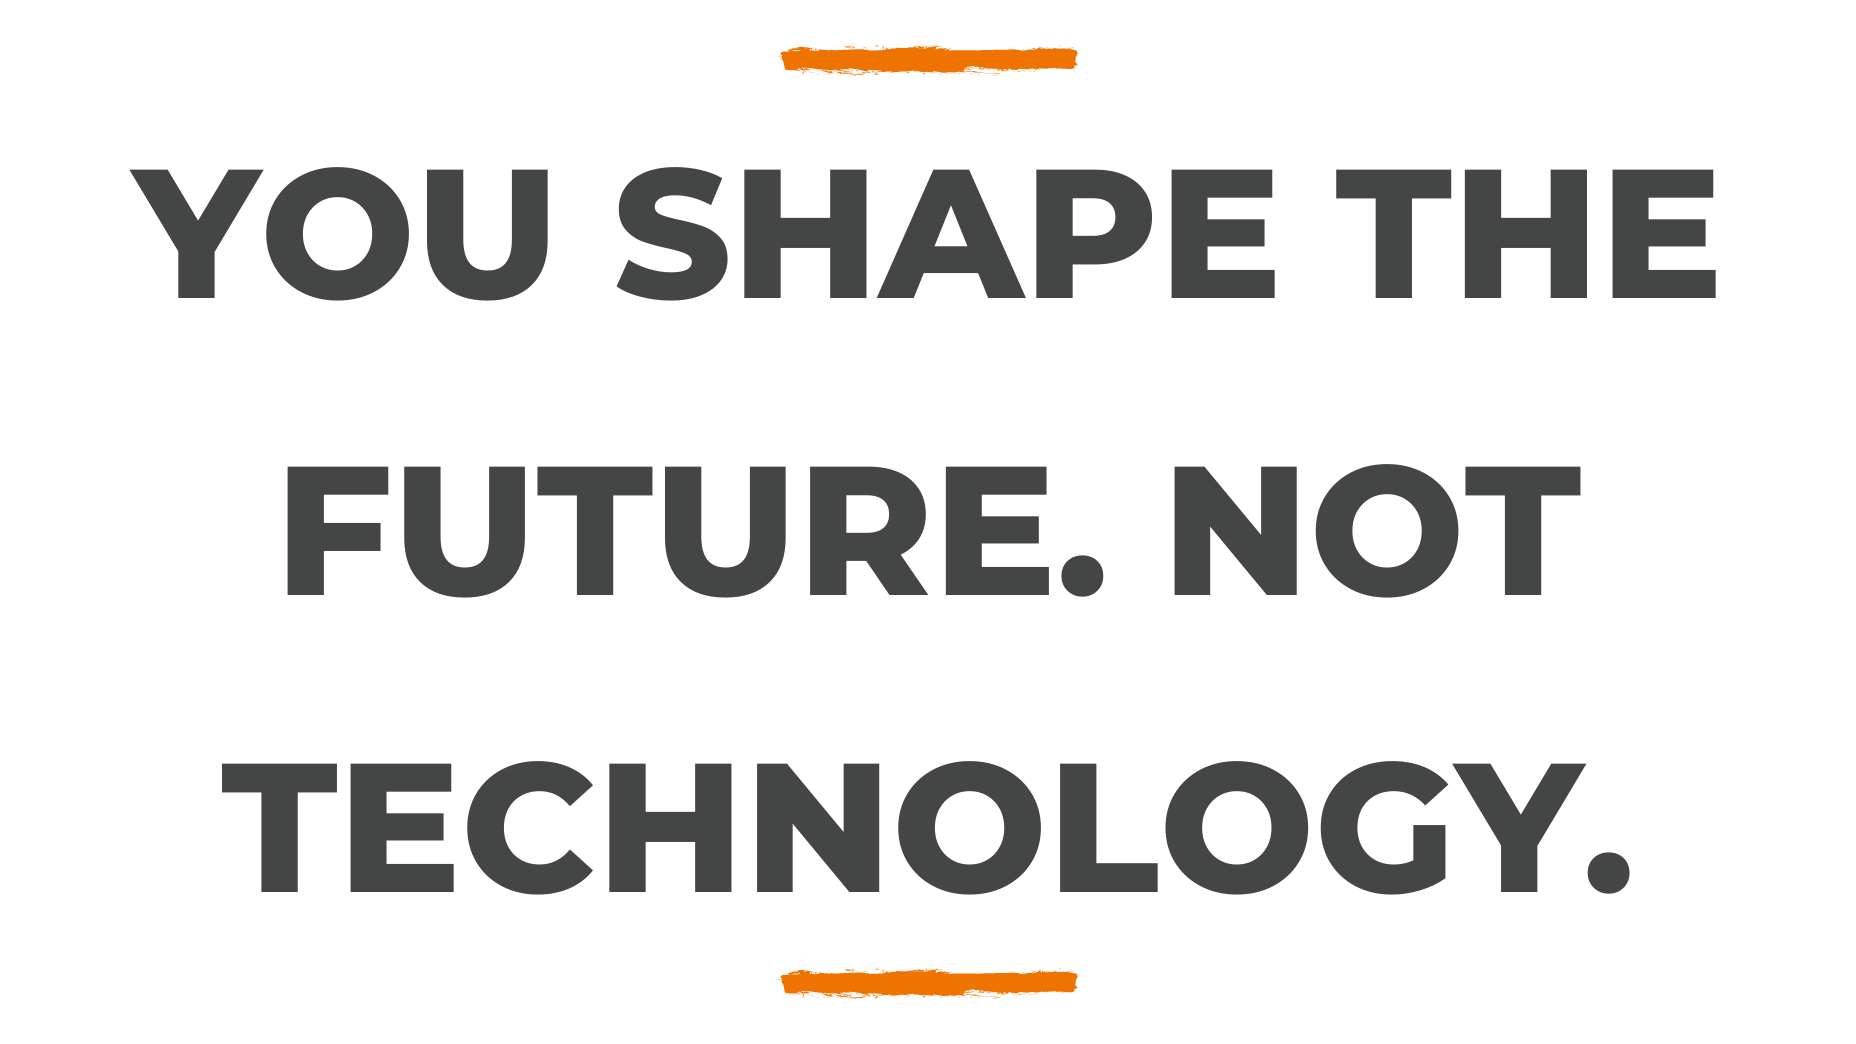 You shape the future. Not Technology.